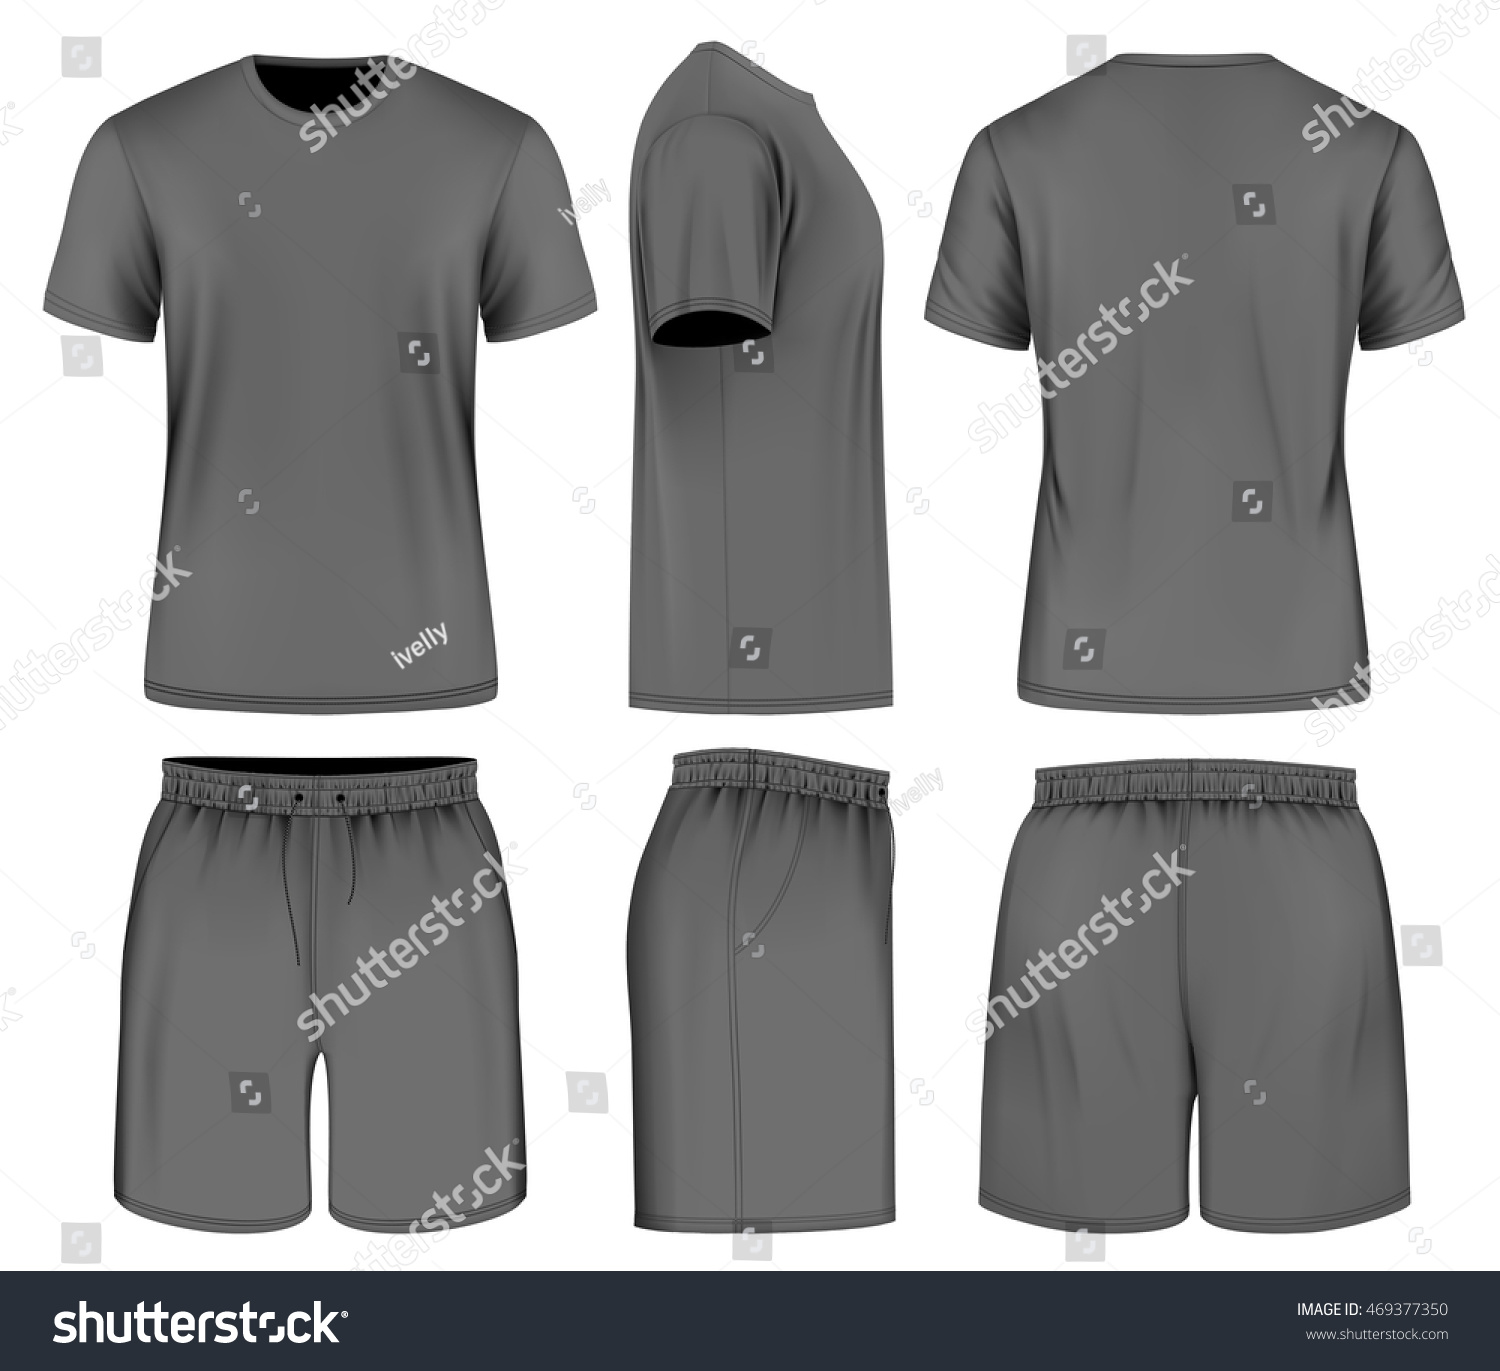 Mens Black Short Sleeve Tshirt Sport Stock Vector 469377350 ...